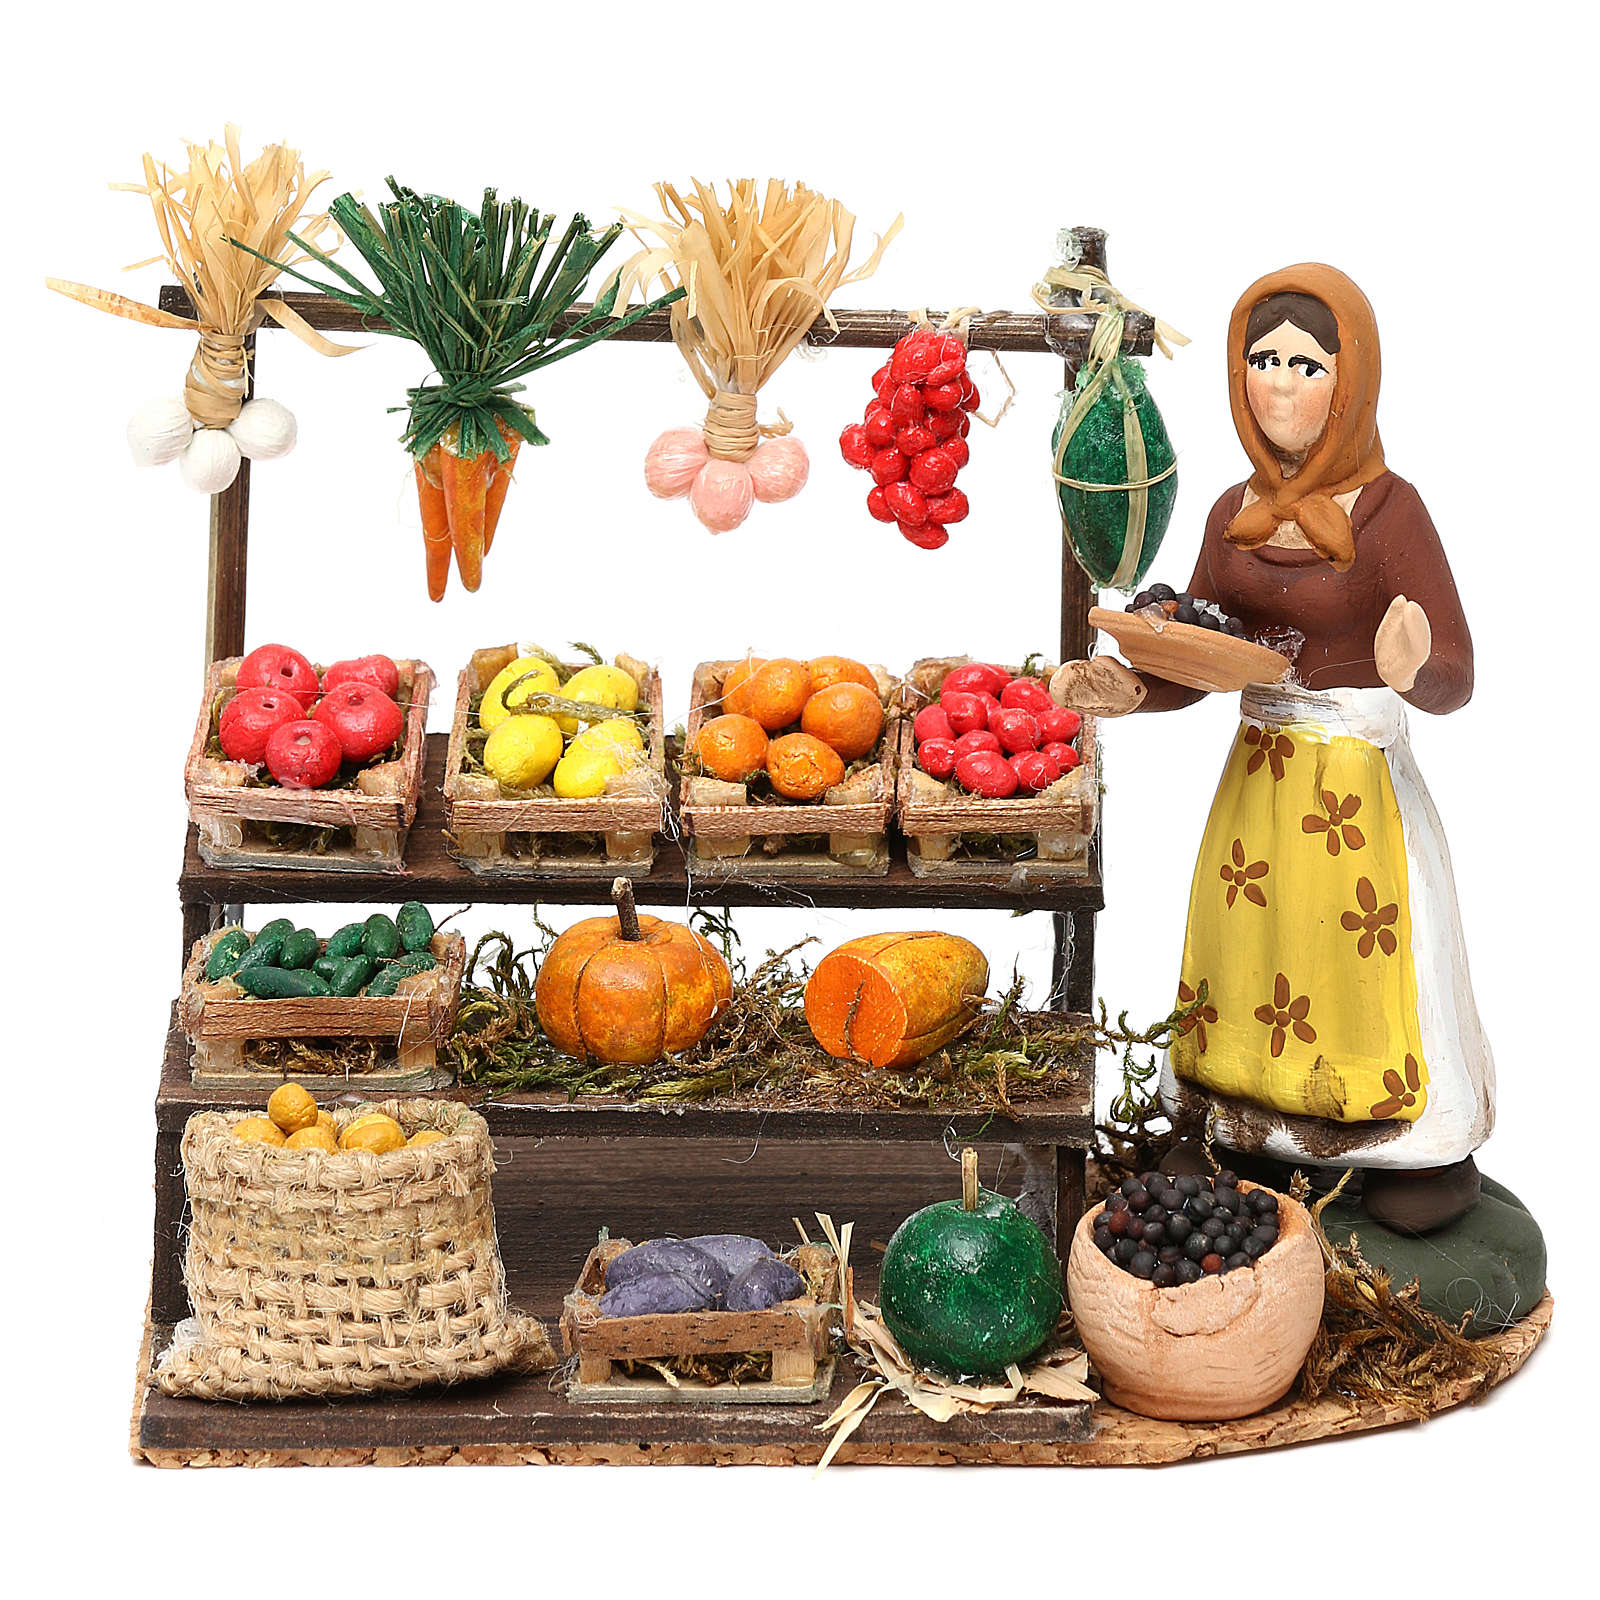 Woman with fruit and vegetable counter for Neapolitan Nativity scene 8 cm 4